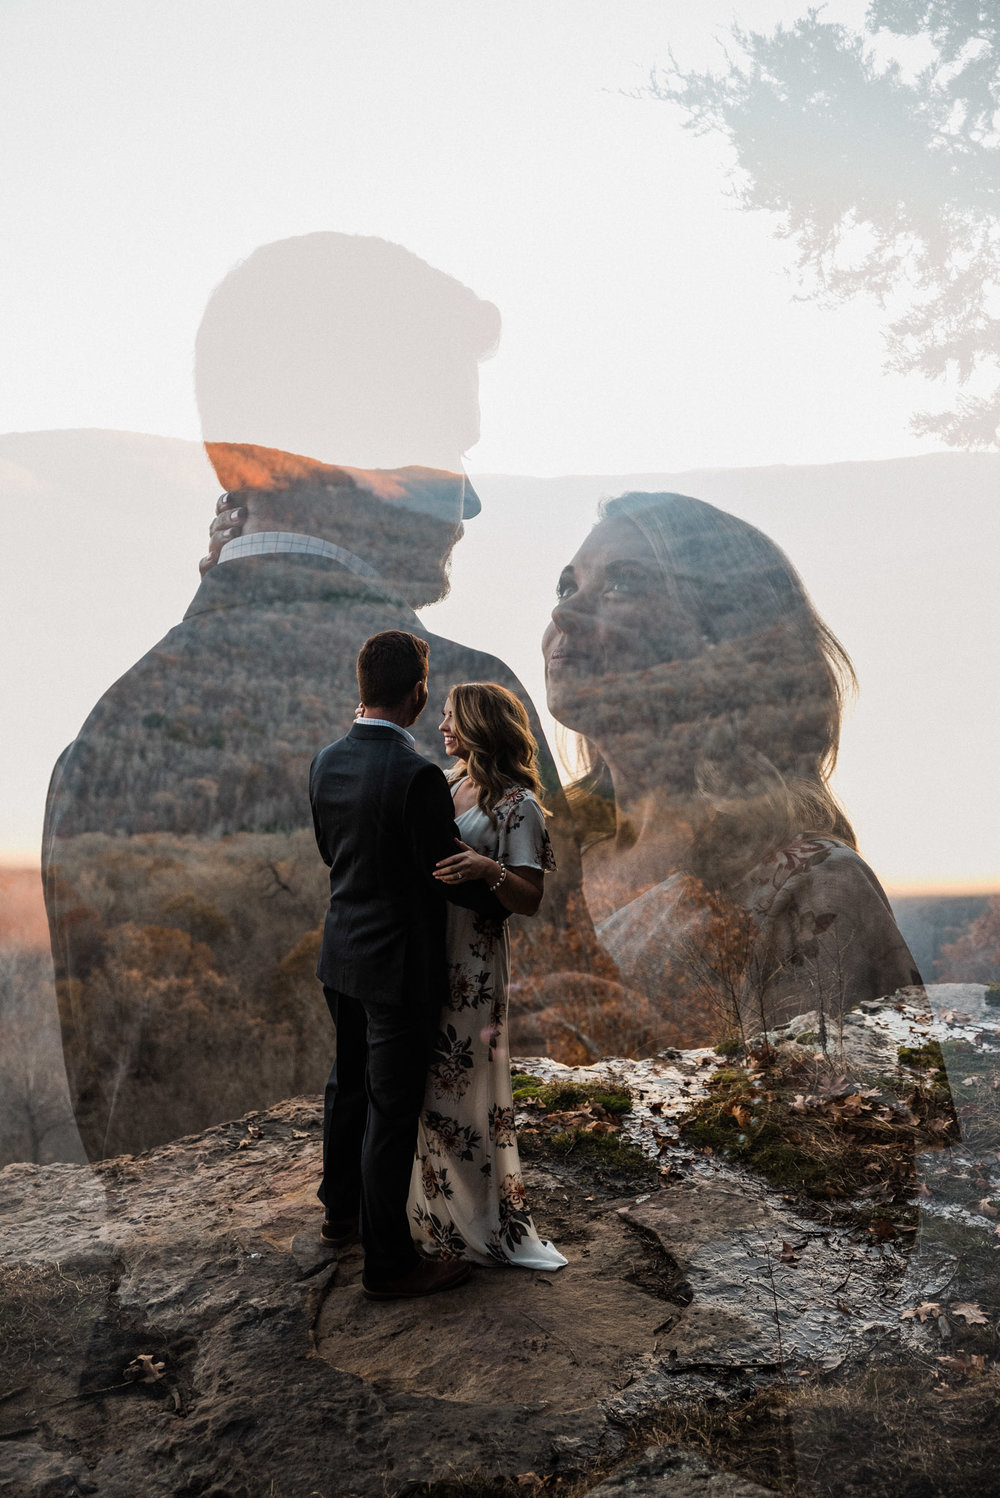 Tanner Burge Photography - Double Exposure Adventure Engagement Session Ozark Mountains Buffalo River with Courtney & Taylor.jpg